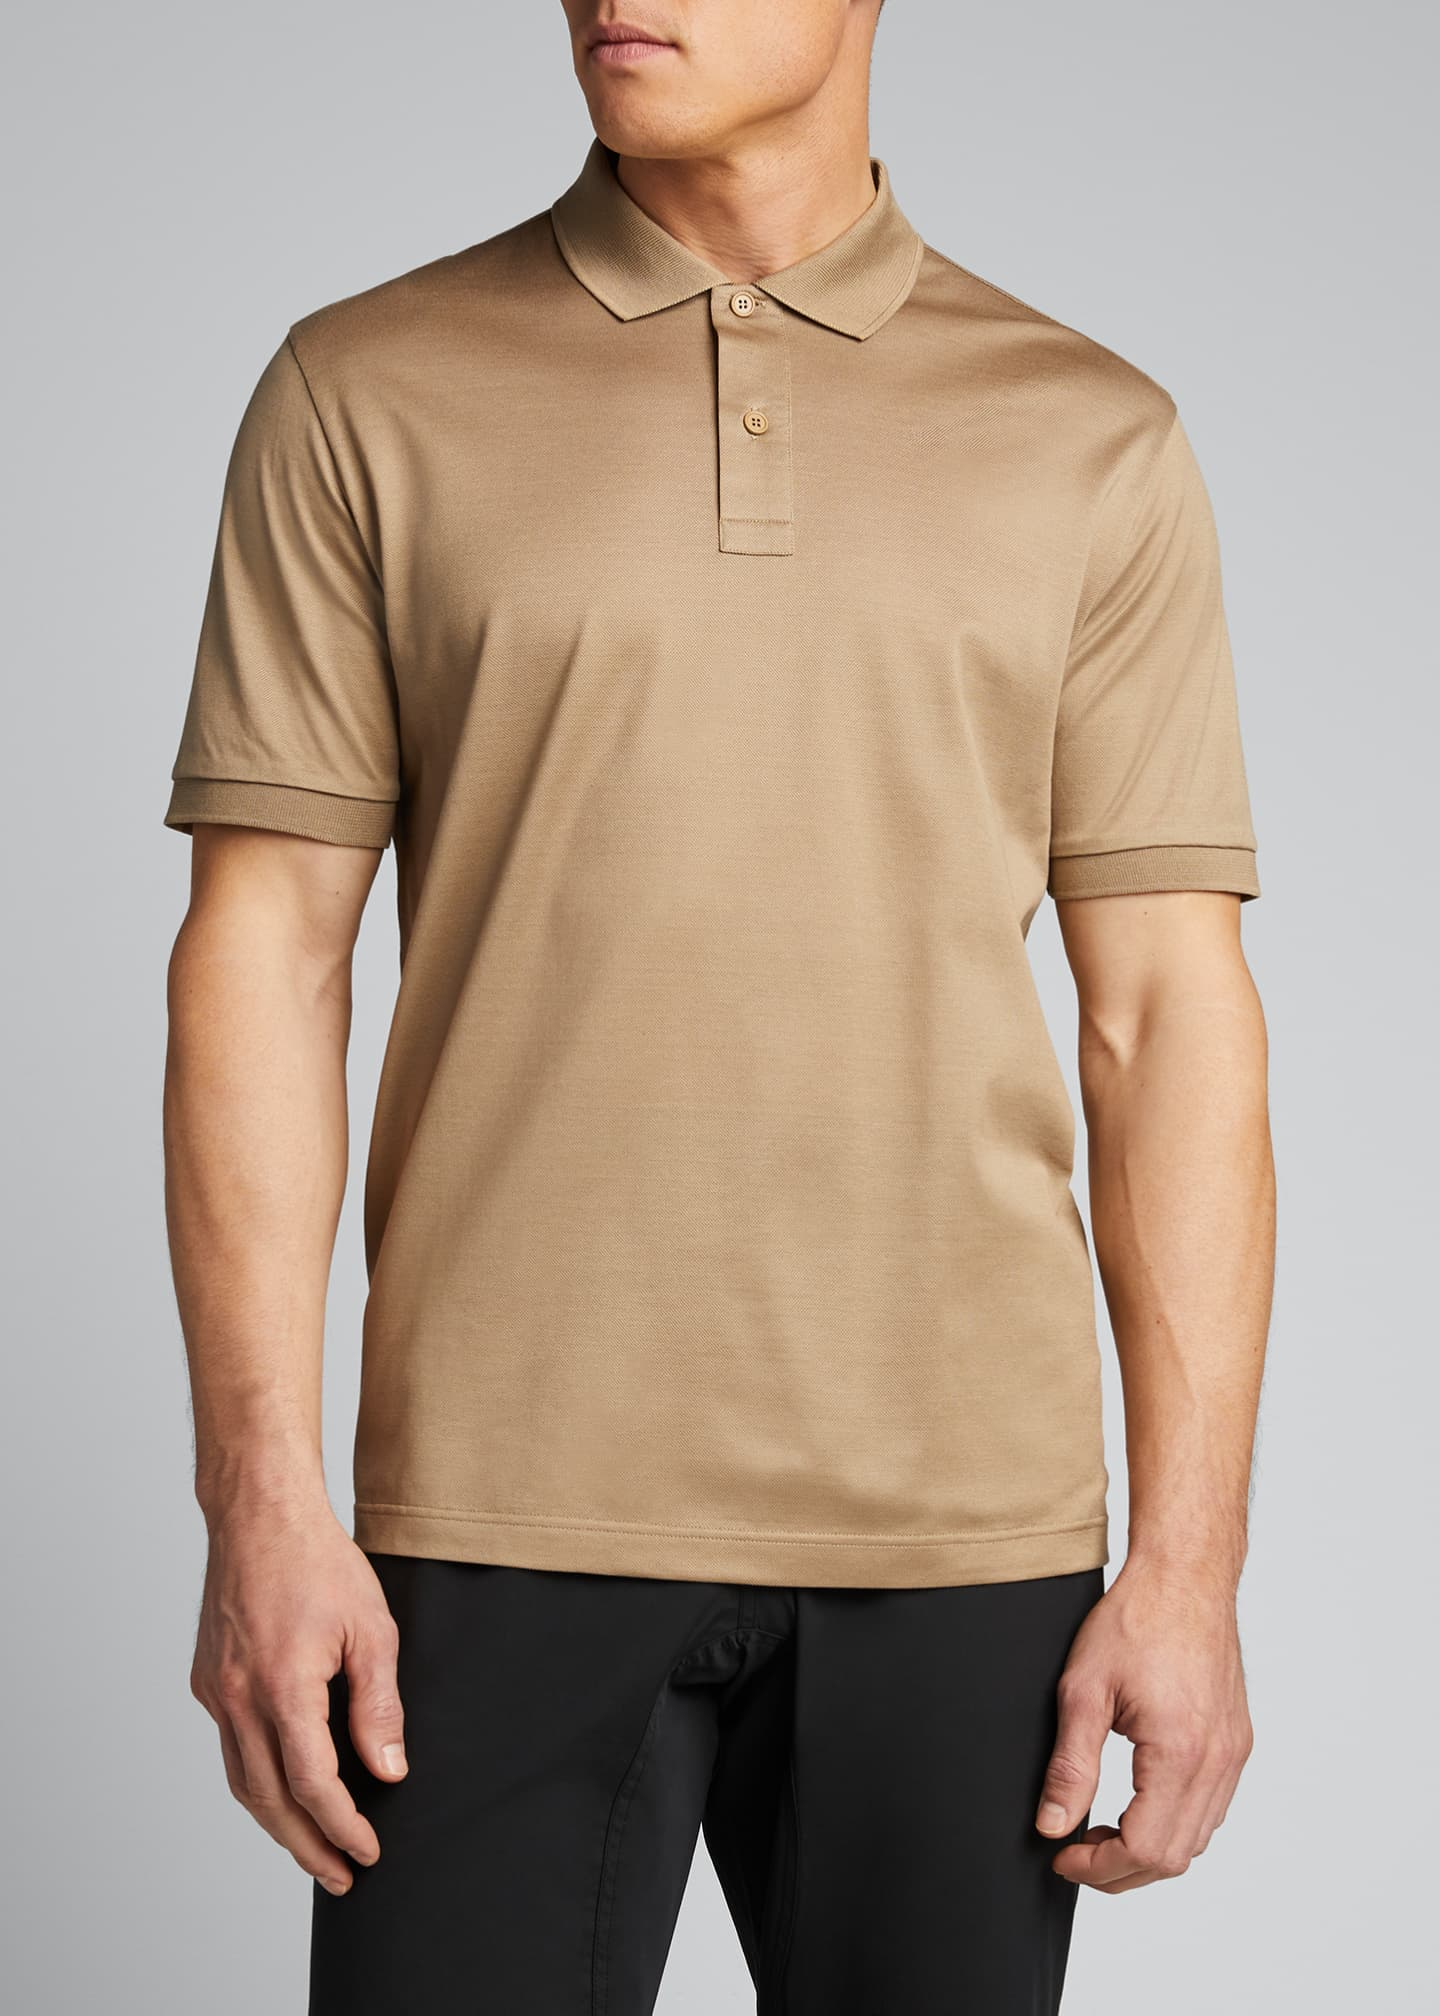 Image 3 of 5: Men's Solid Pique Polo Shirt